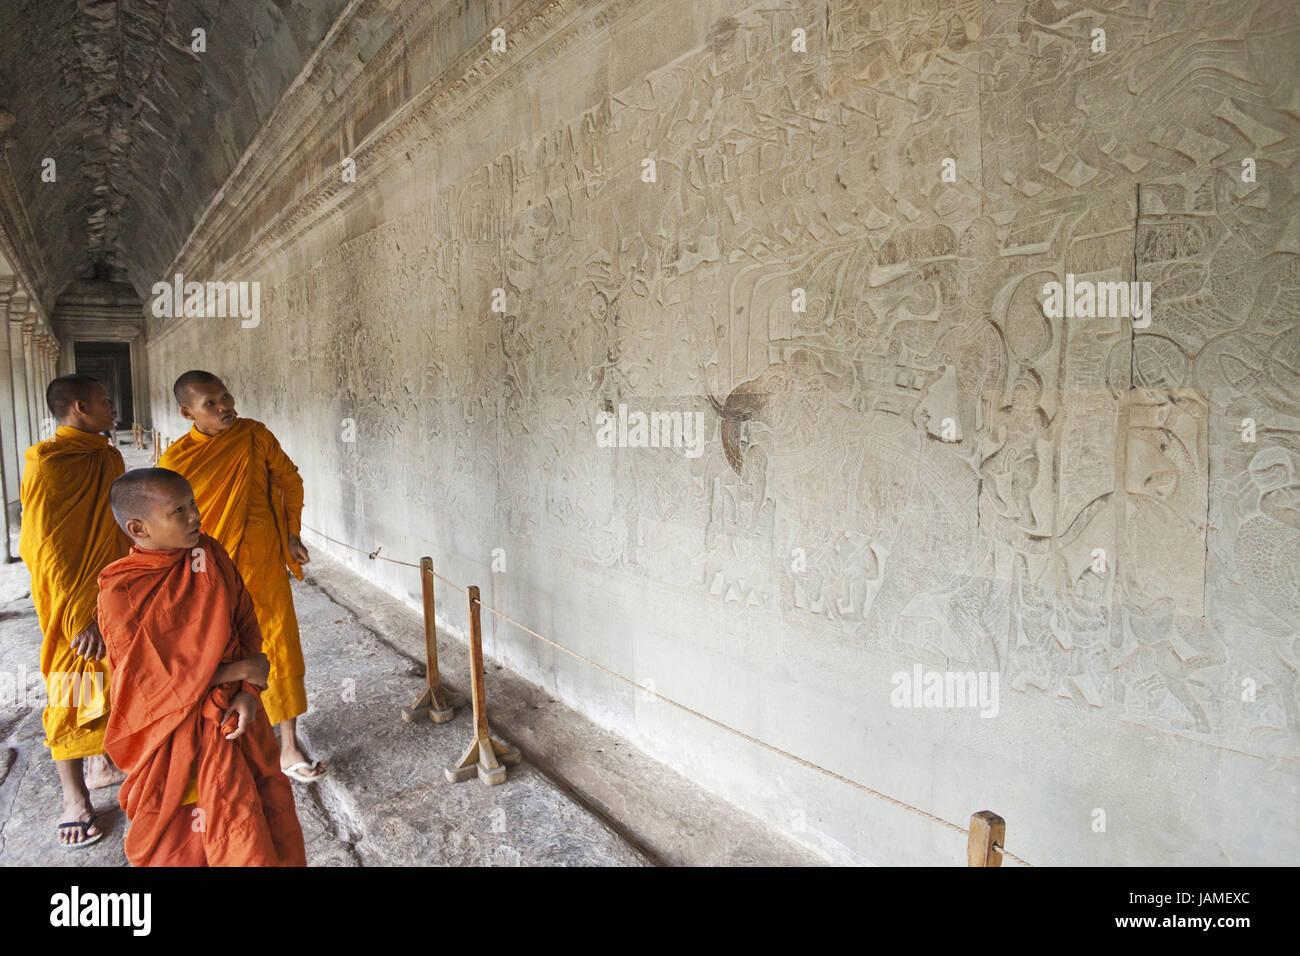 Cambodia,Siem Reap,Angkor Wat,monks,walk,wall,grace notes,reliefs,representation,scenes from the Ramayana epic, - Stock Image